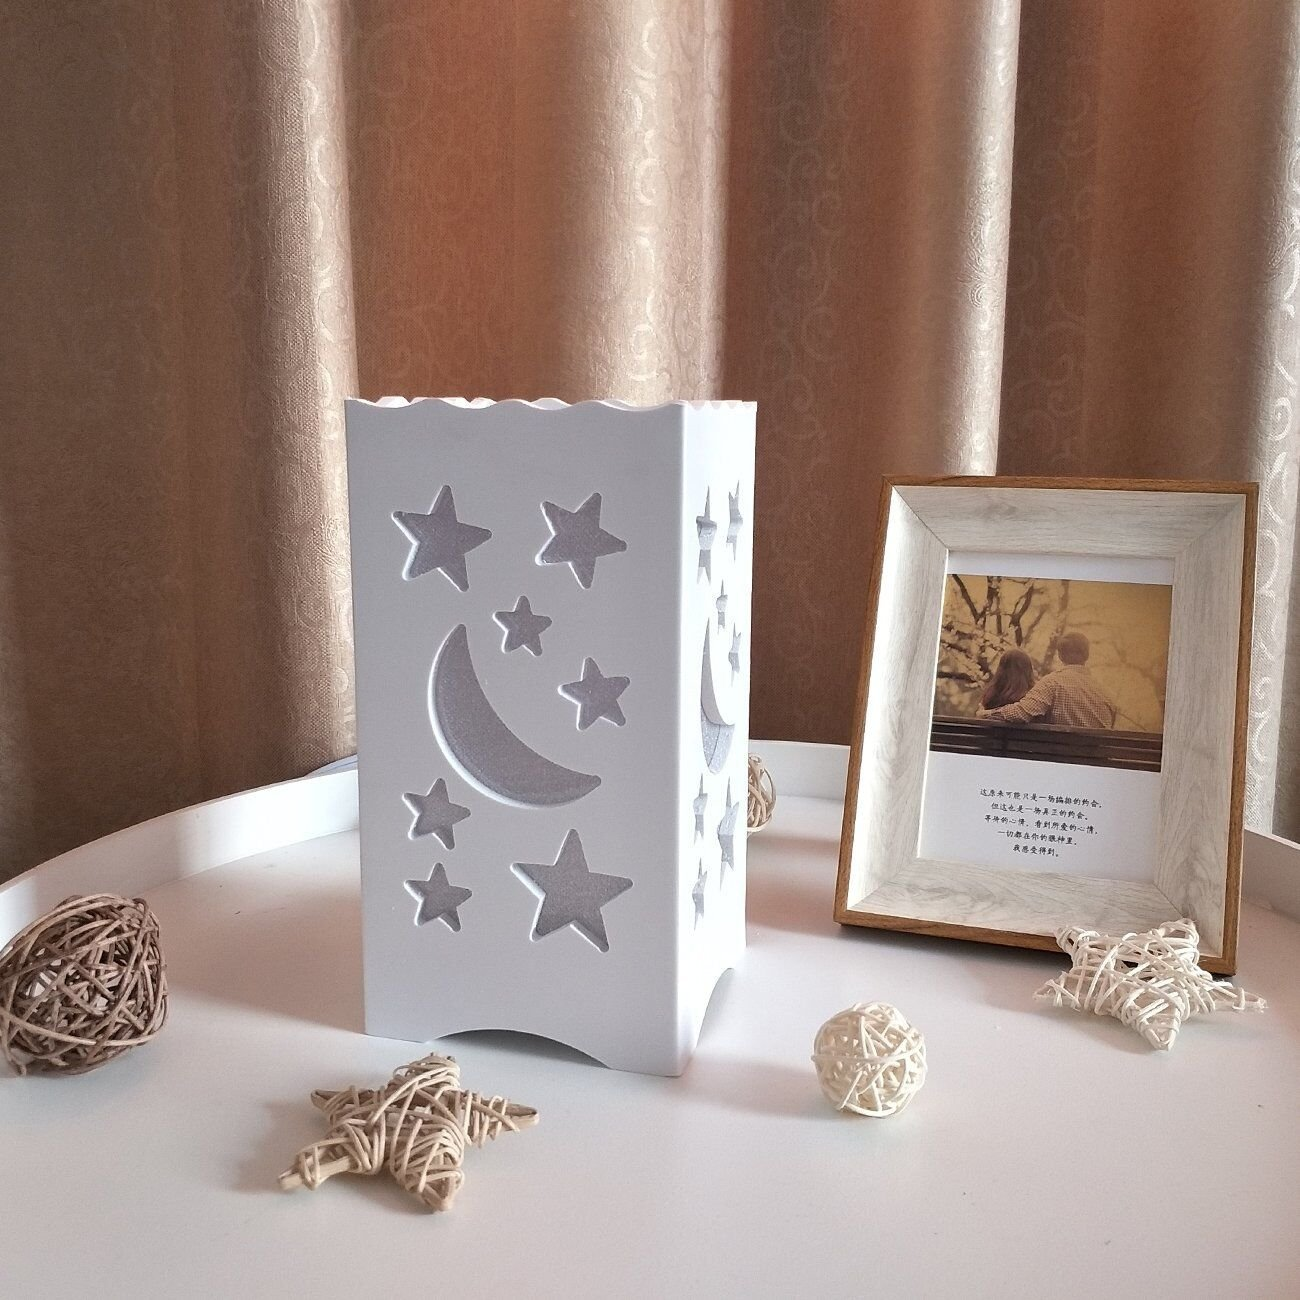 Kids Night Light Table Light White Art Light with Moon and Star Shaped Carving, Desk Lamp Night Light for Nursery,Bedroom(Star) by Dengbaba (Image #4)